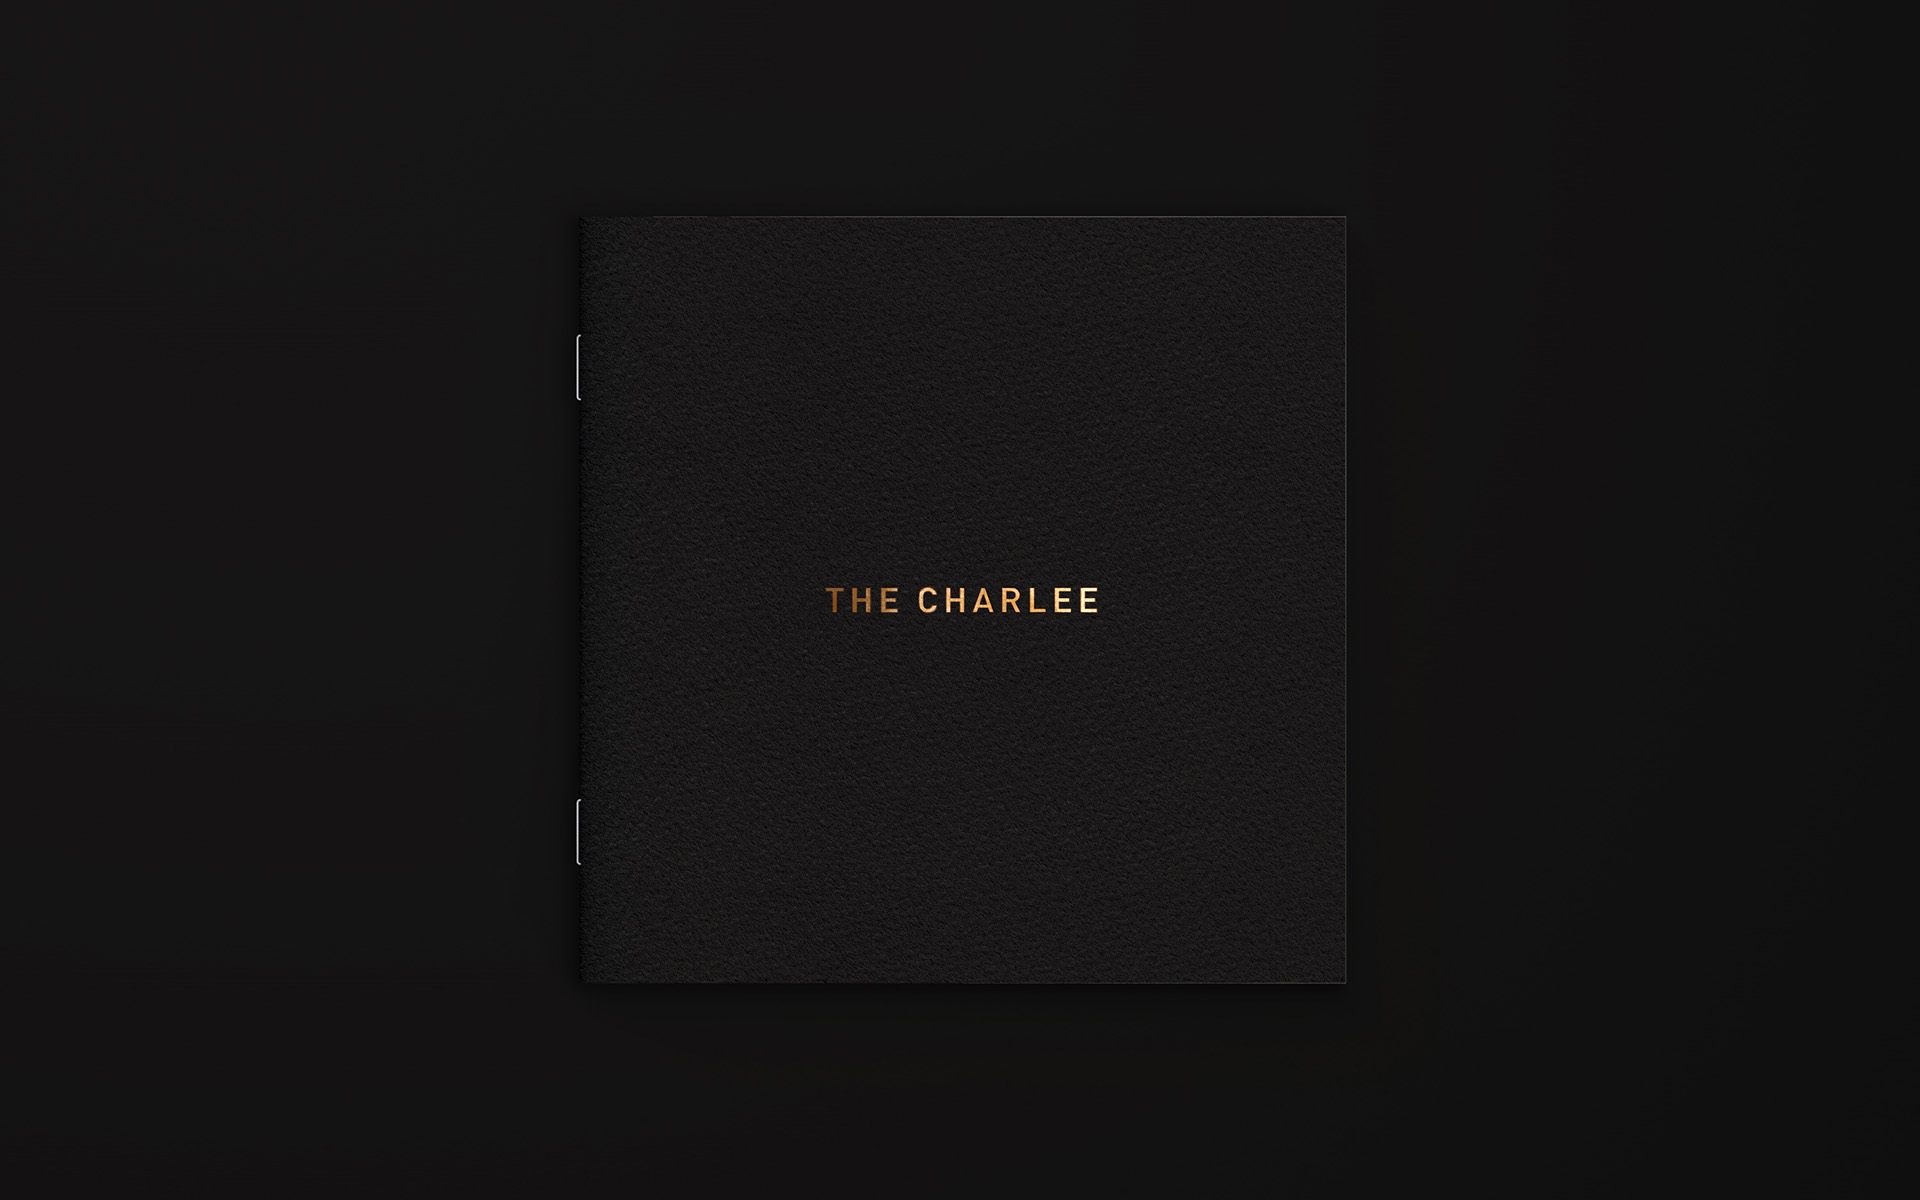 The Charlee salon's brochure cover with gold foil logo